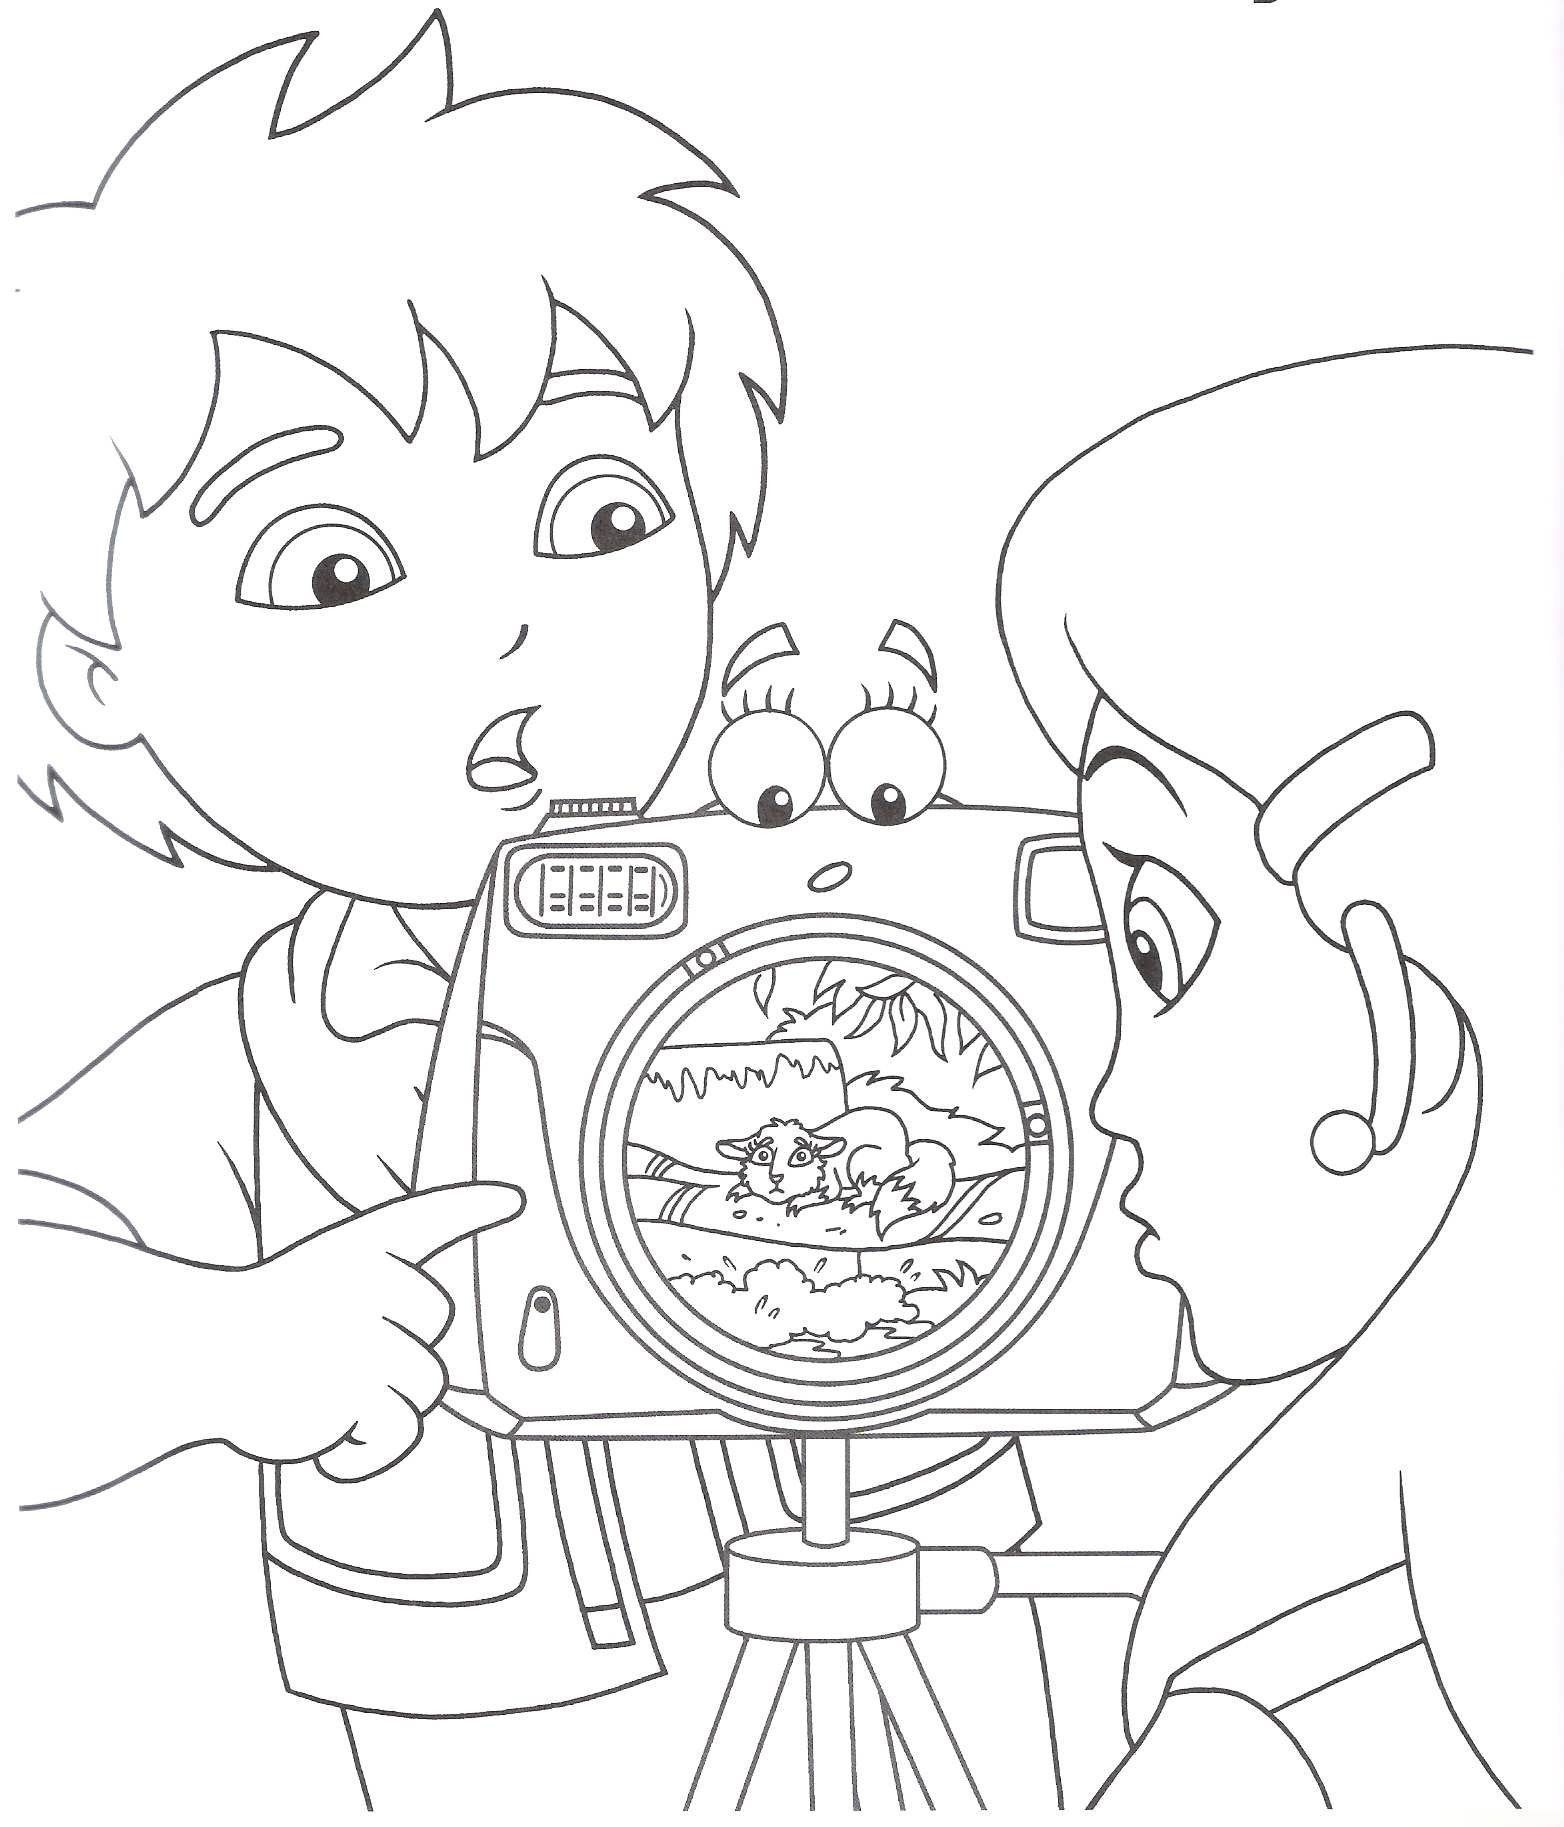 1564x1827 The Best Diego Coloring Pages With Monkey For Kids Luxury Zoo Sock